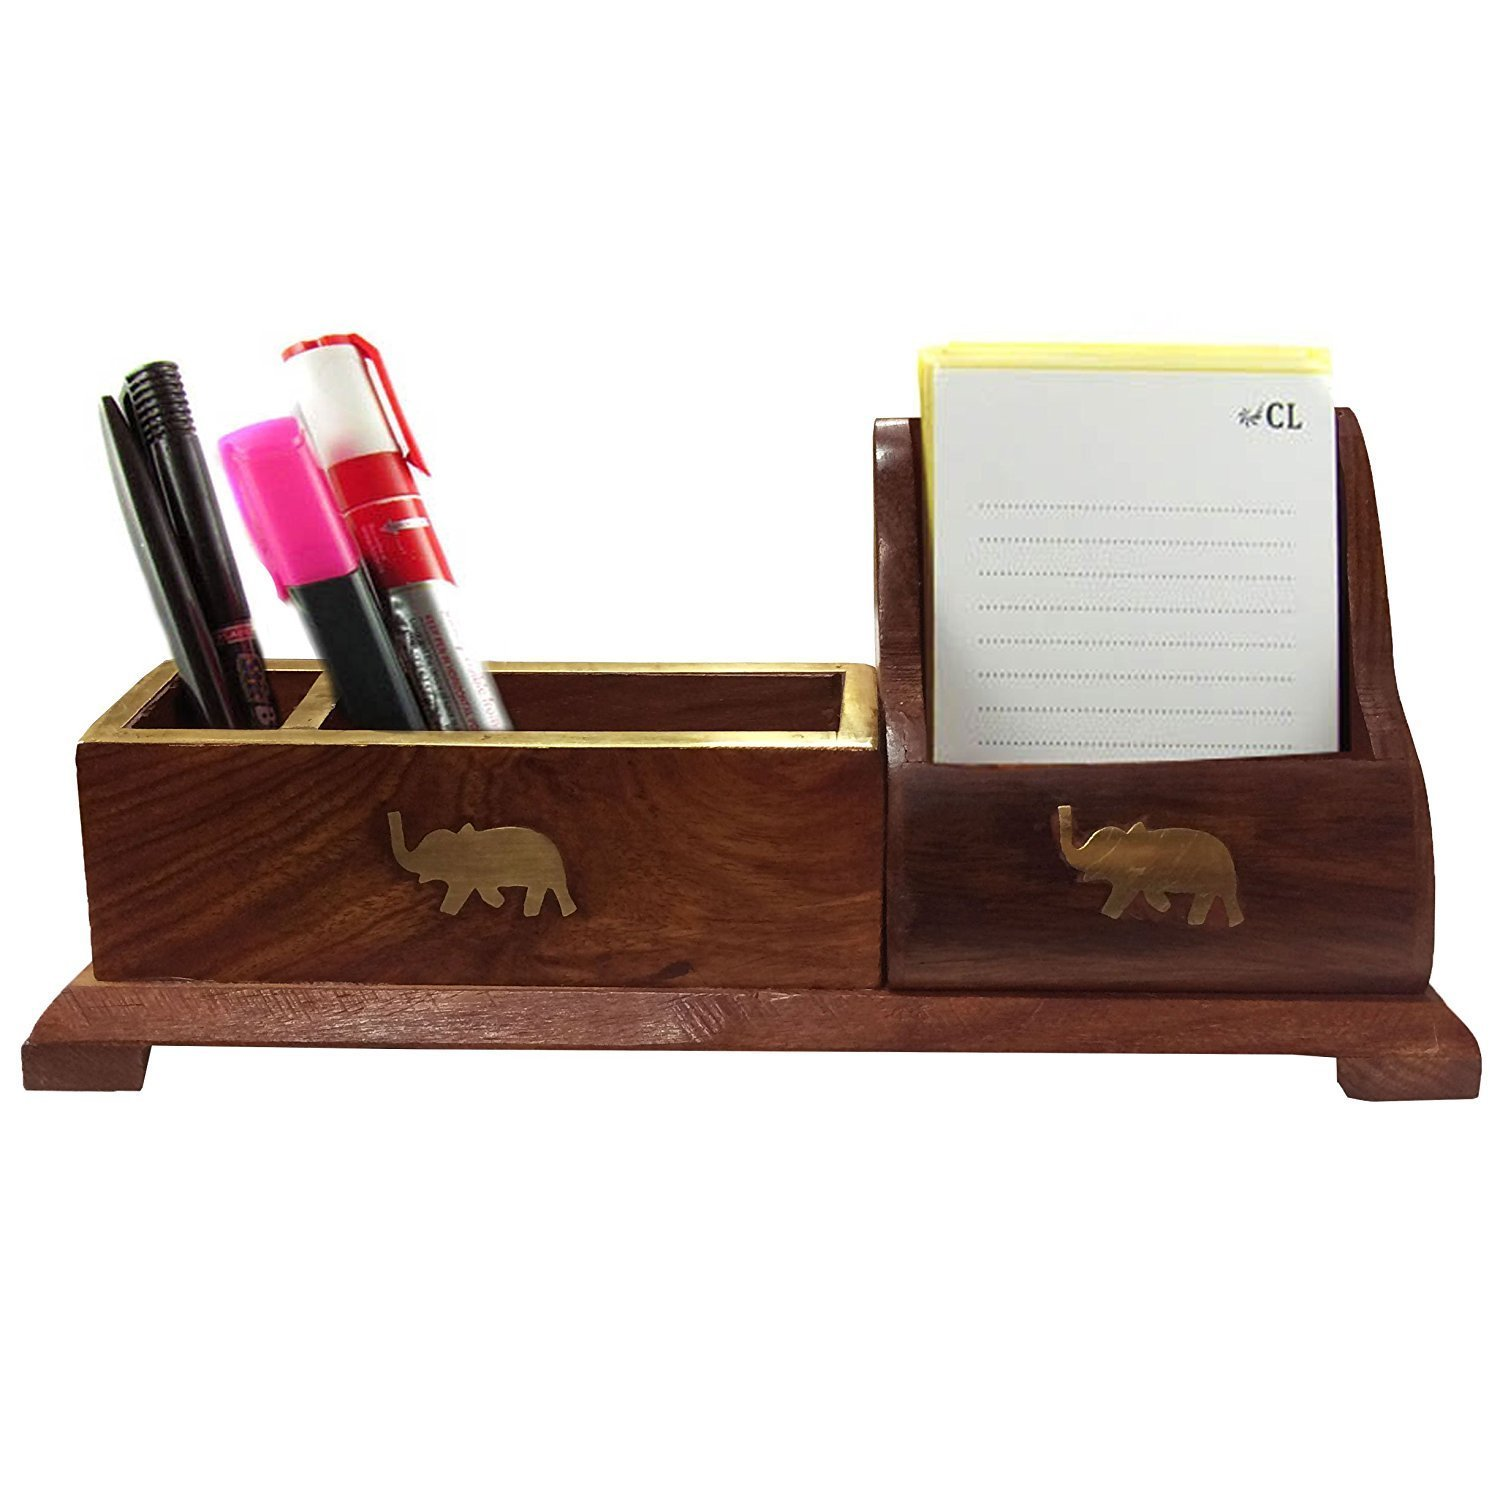 Handmade 3 Compartment Classic Brown Wood Desktop Office Supply Caddy / Pen Holder / Mail Holder / Desk Organizer, Easter Day / Mother day / Good Friday Present